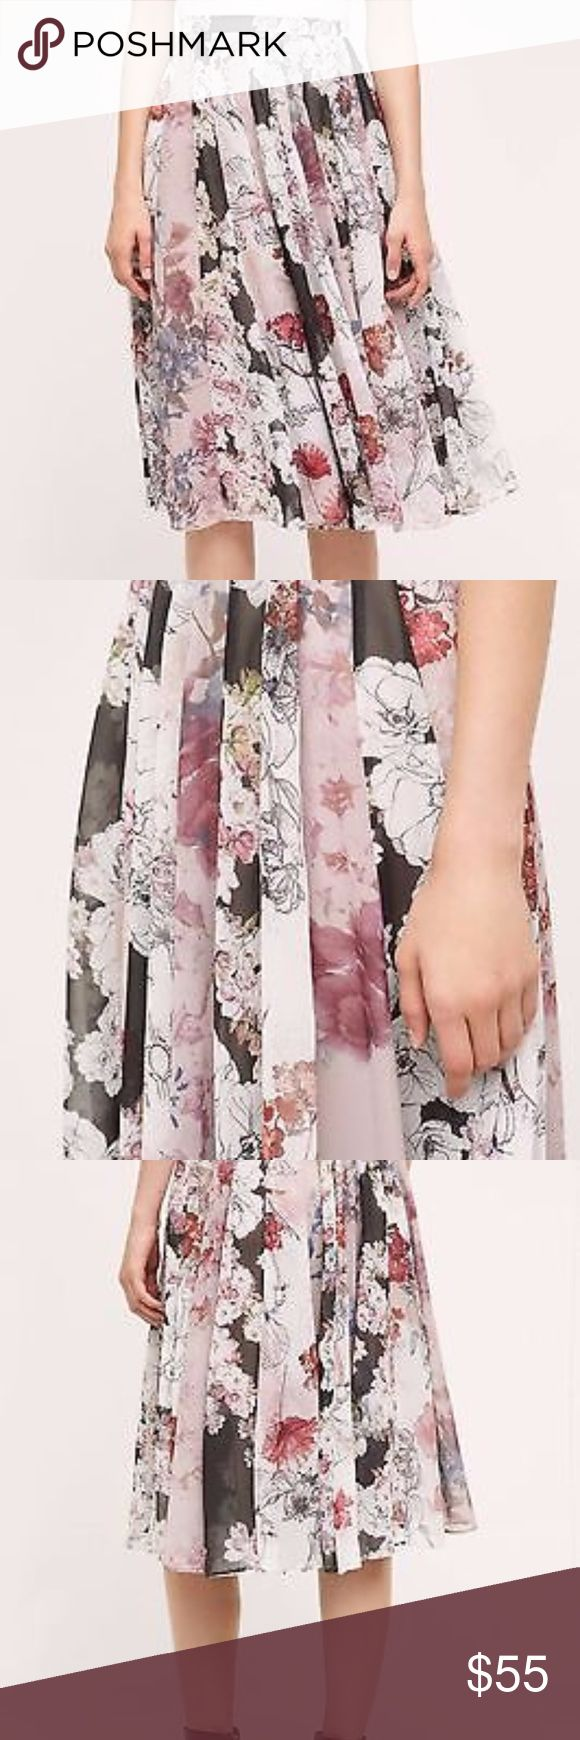 "Varun Bahl Flowerful Midi Skirt by Varun Bahl - Flowy pleated A-line midi skirt  - Size M: Fit perfect for me (typically size 8 at waist and 5'4"") hit few inches below knee  - Side-zip-up - Beautiful pink/purple/charcoal gray floral print  - Super cute with graphic t-shirts tucked or knotted and with sneakers! - Good condition, gently used. Side zipper at top does not line up perfectly, but is not noticeable and does not affect fit - Hand wash or dry clean - Shell: 100% polyester lining…"